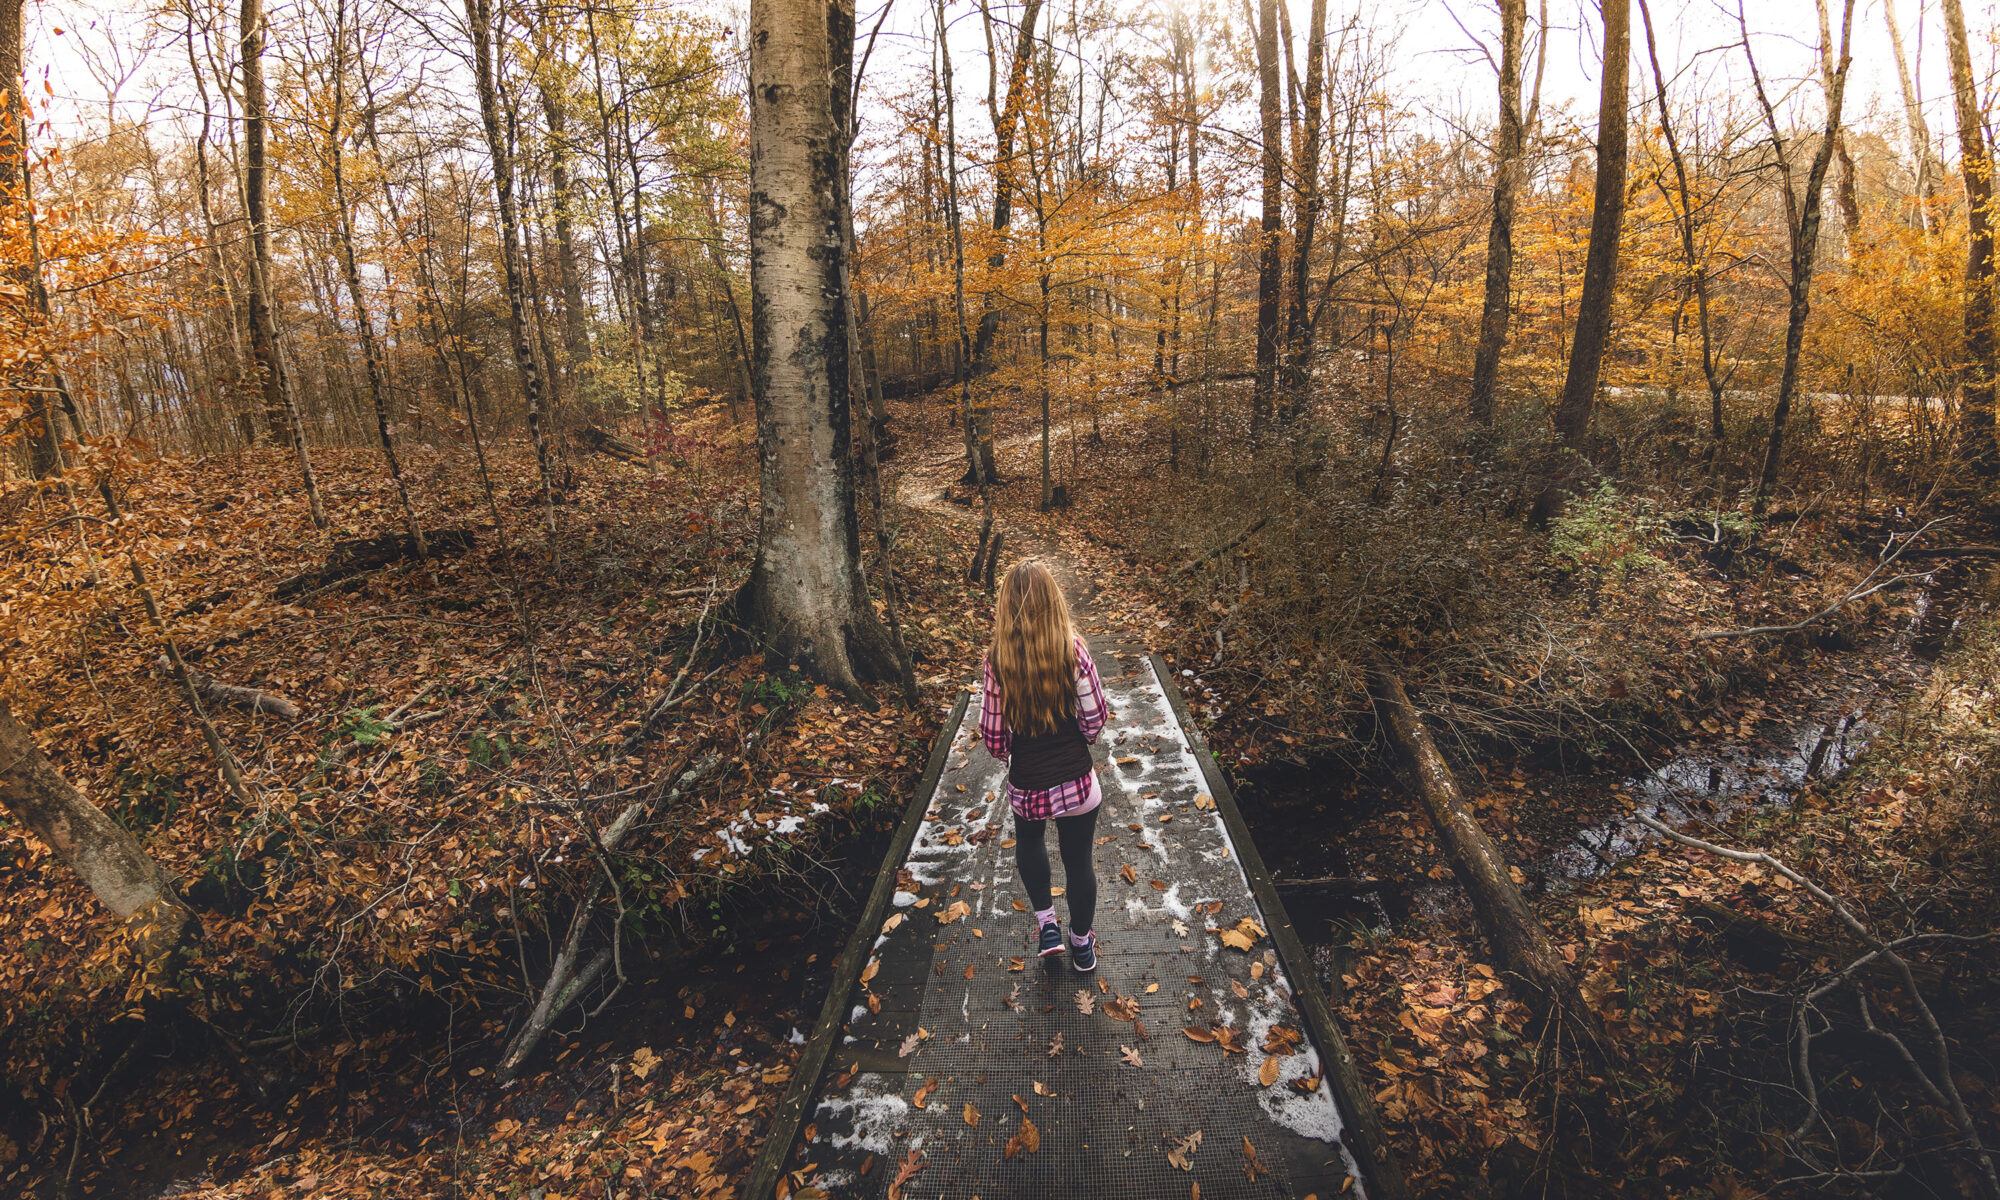 Woman hiking in autumn wooded area, Brum Woods, Batesville, Indiana.